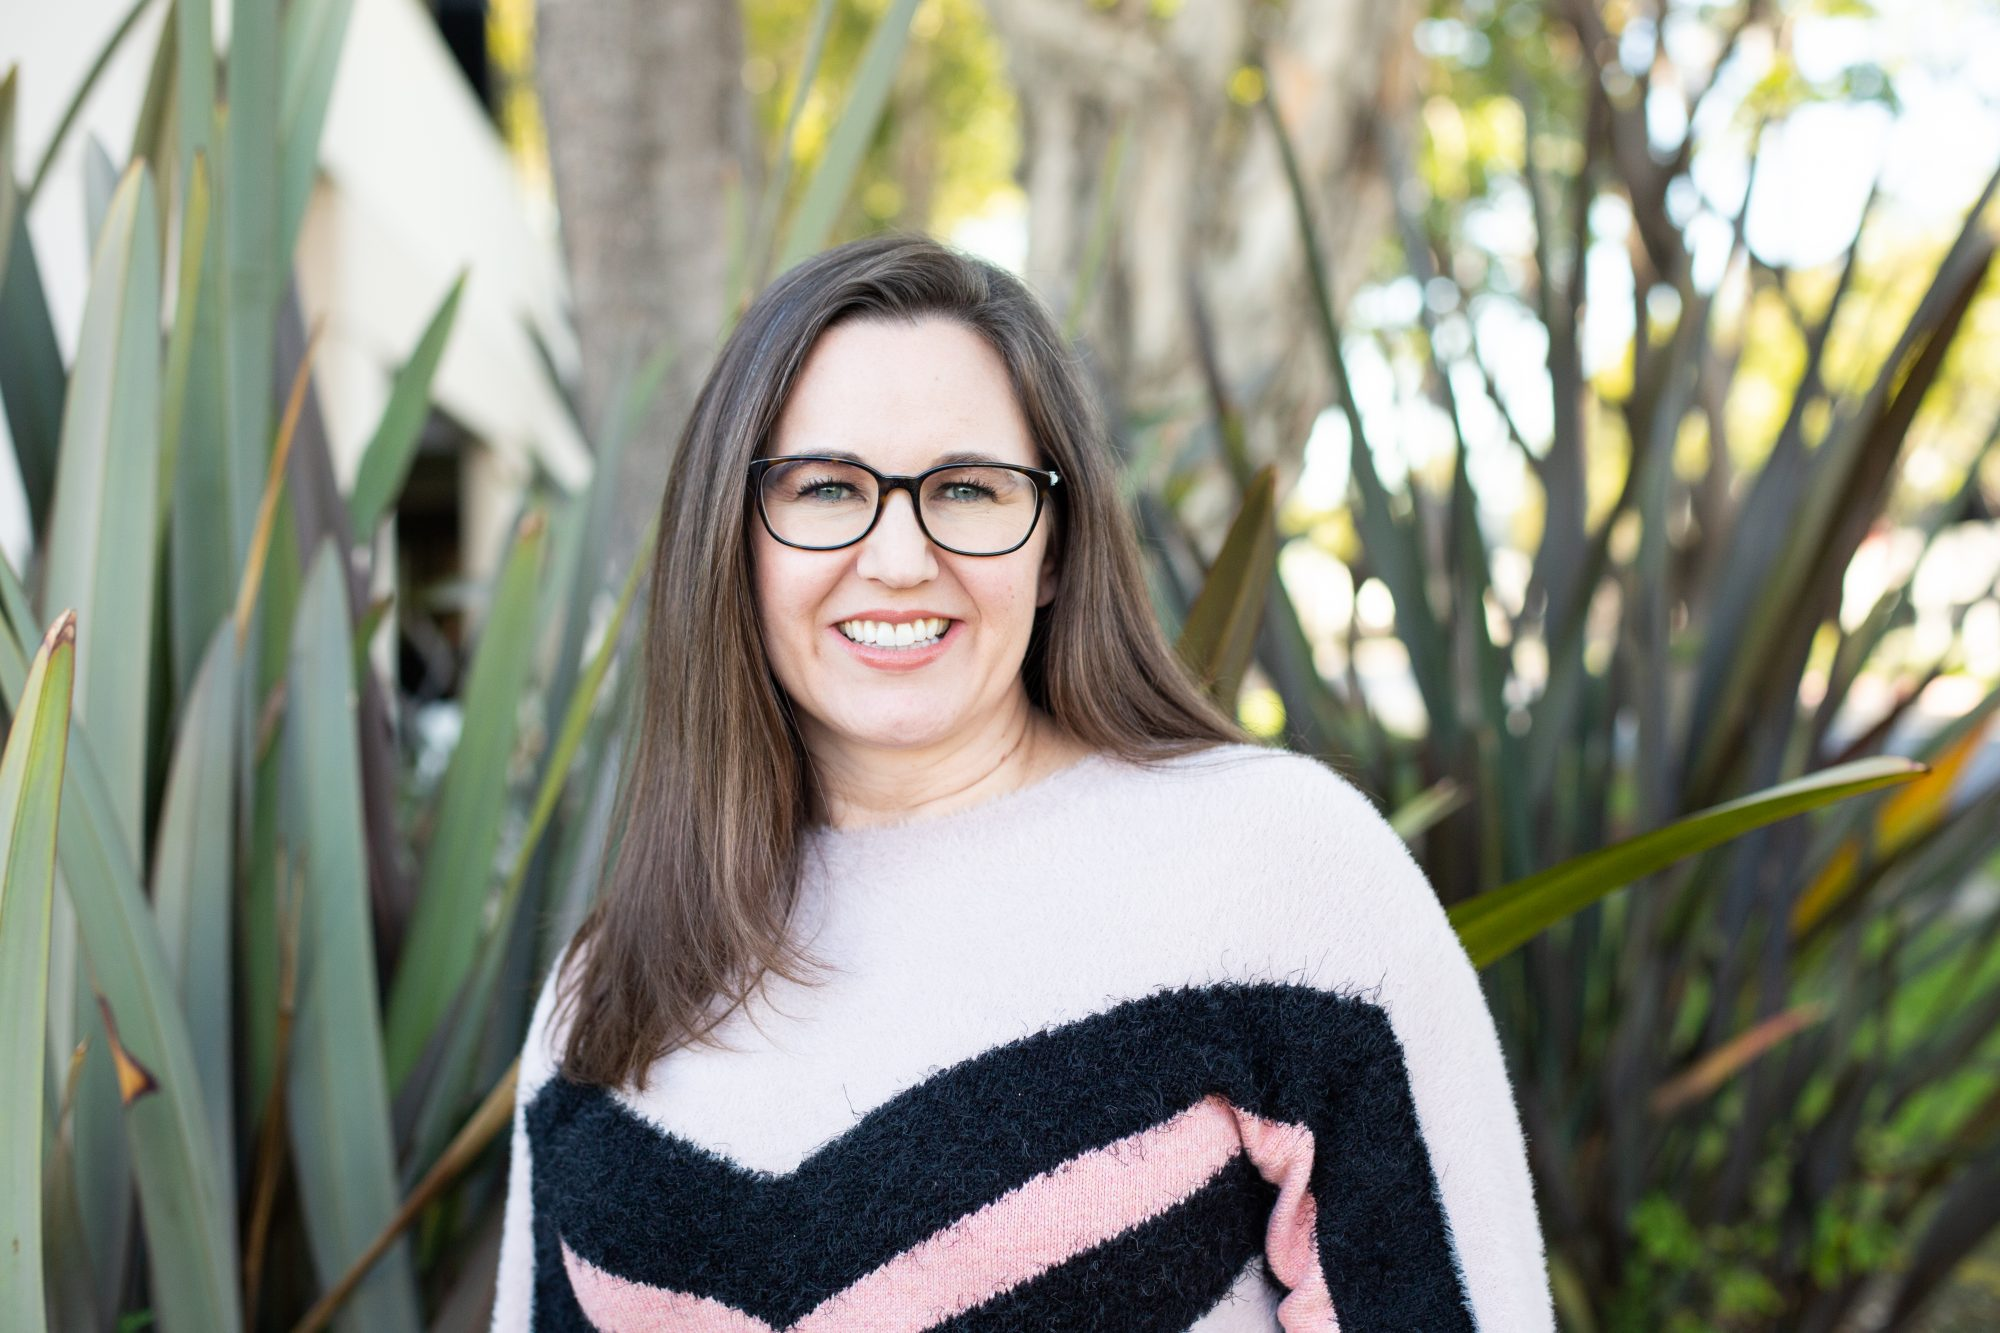 Purium Co-Owner Amy Venner's Corporate COVID Update